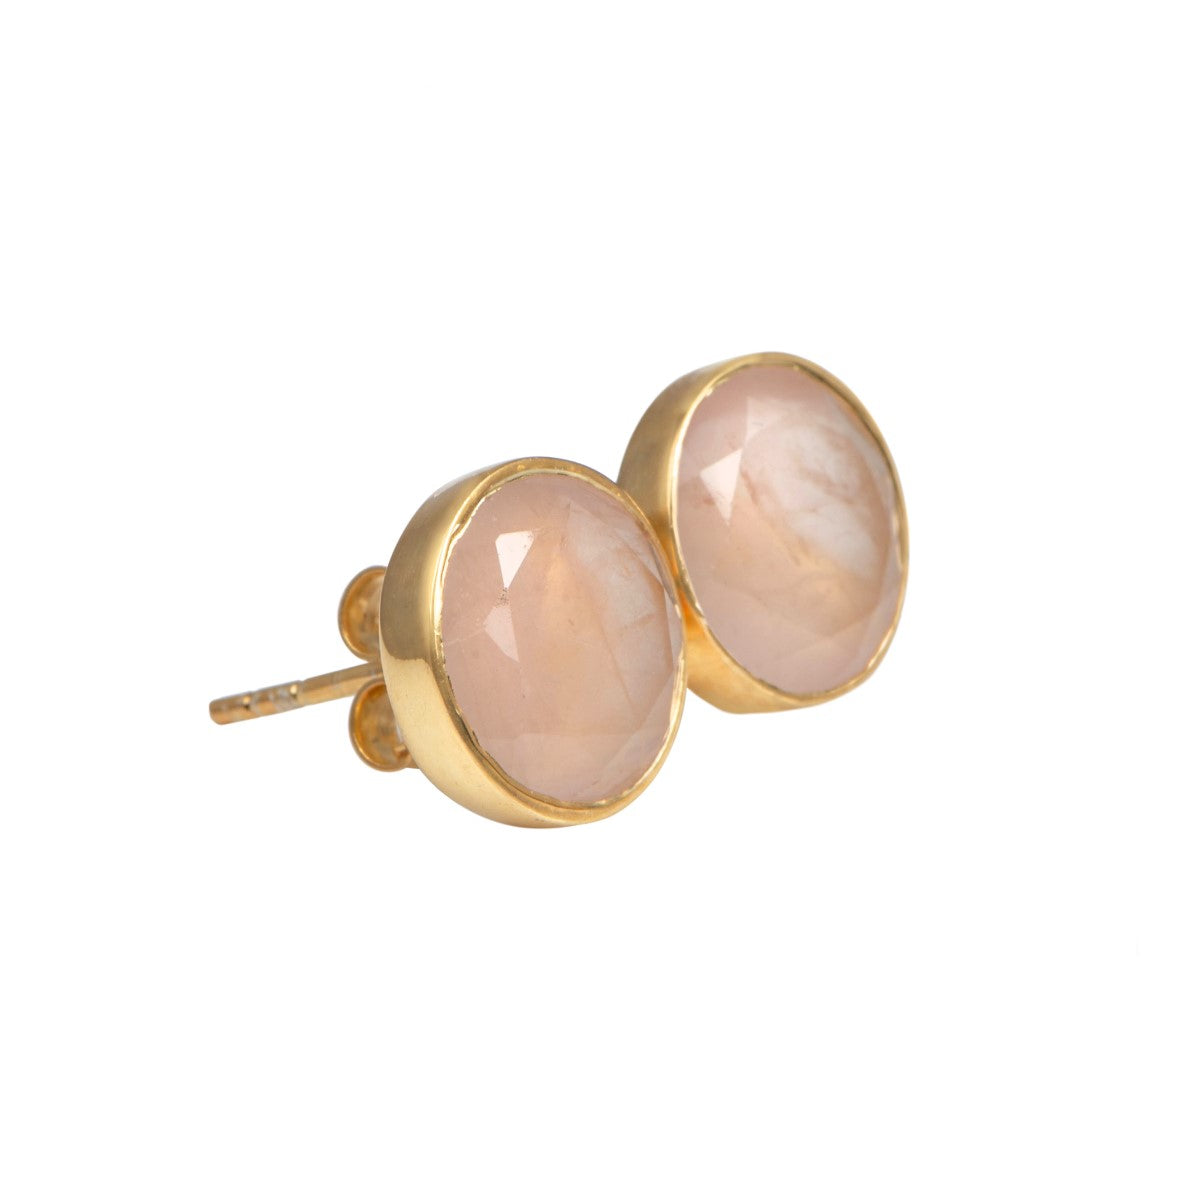 Rose Quartz Studs in Gold Plated Sterling Silver with a Round Faceted Gemstone